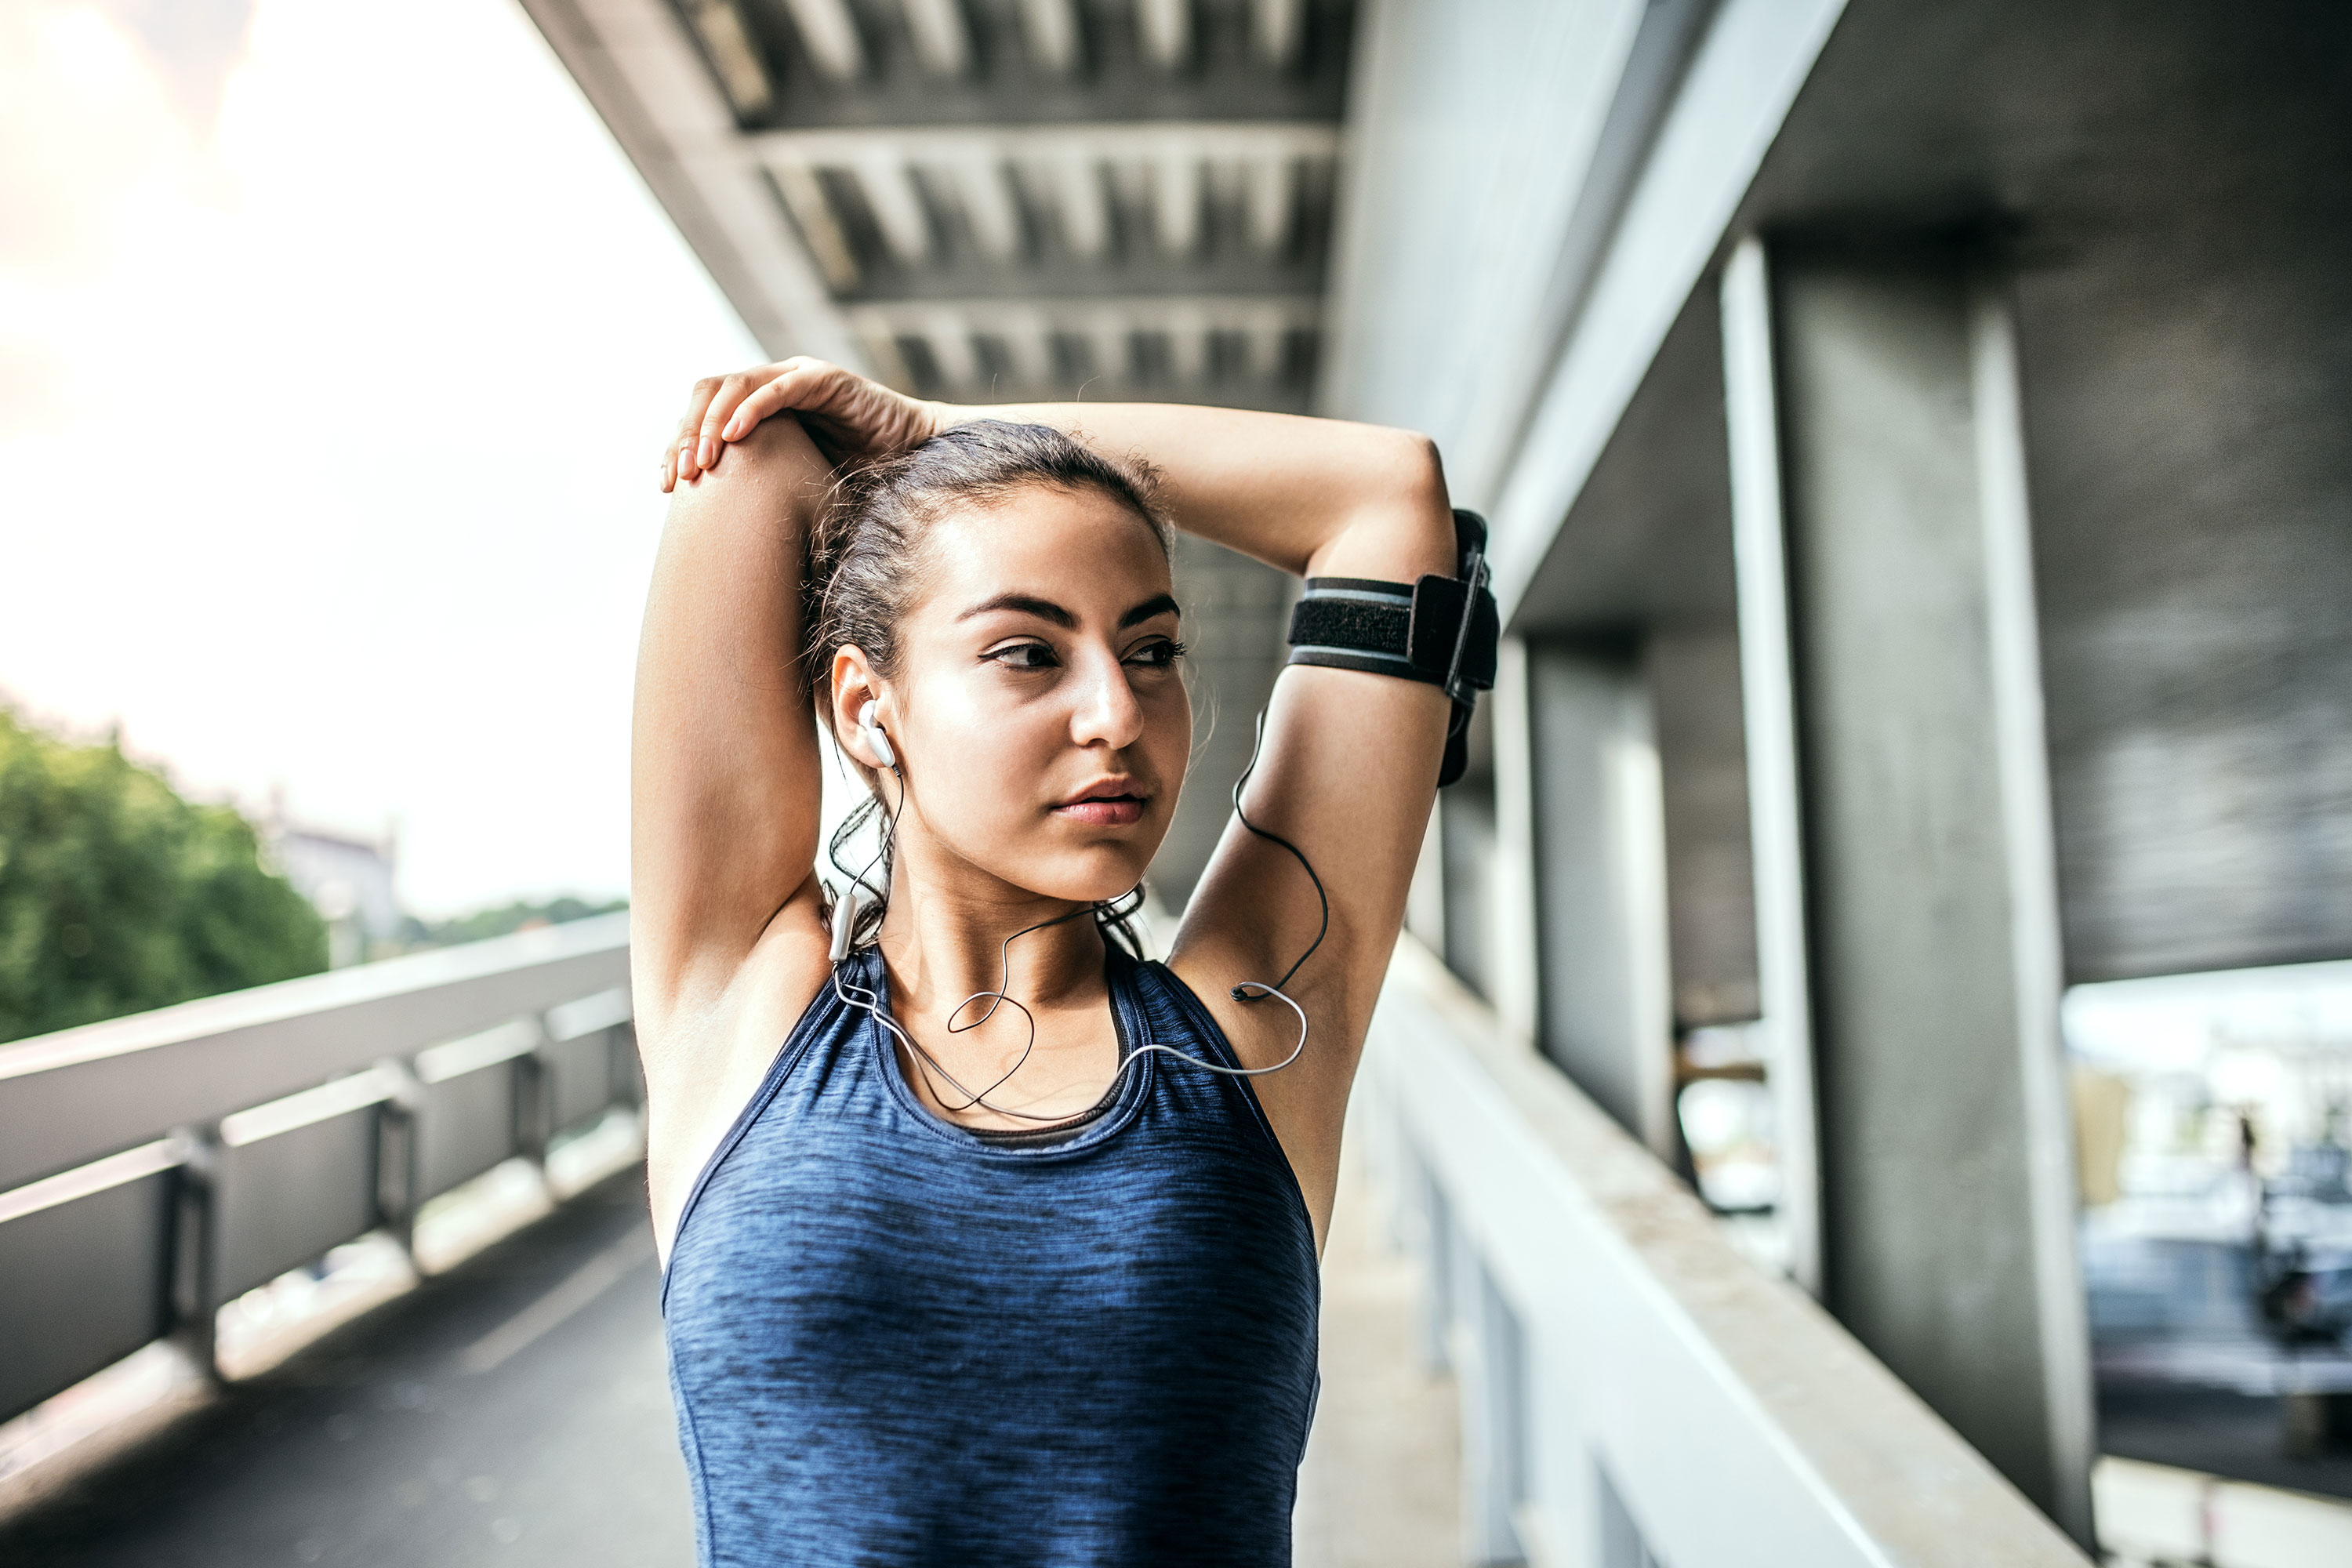 The Top Workout Trends of 2019